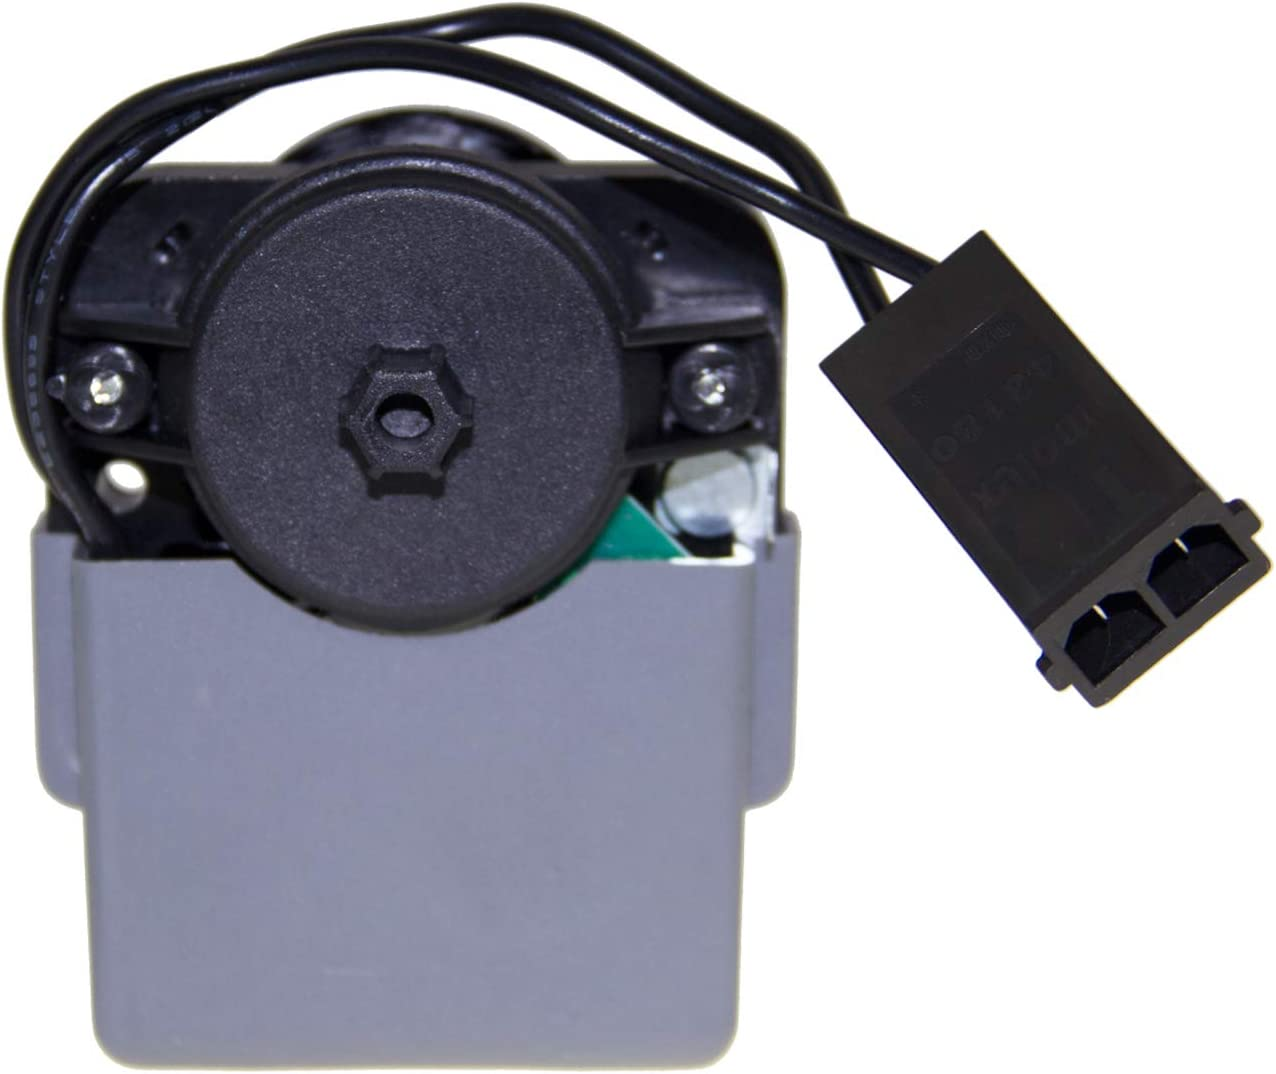 FBULWSEC 2315539 Refrigerator Evaporator Fan Motor Compatible with Whirlpool Kenmore Refrigerator Replaces 2219689 2225625 W10438708 WP2315539VP AP6007247 PS11740359